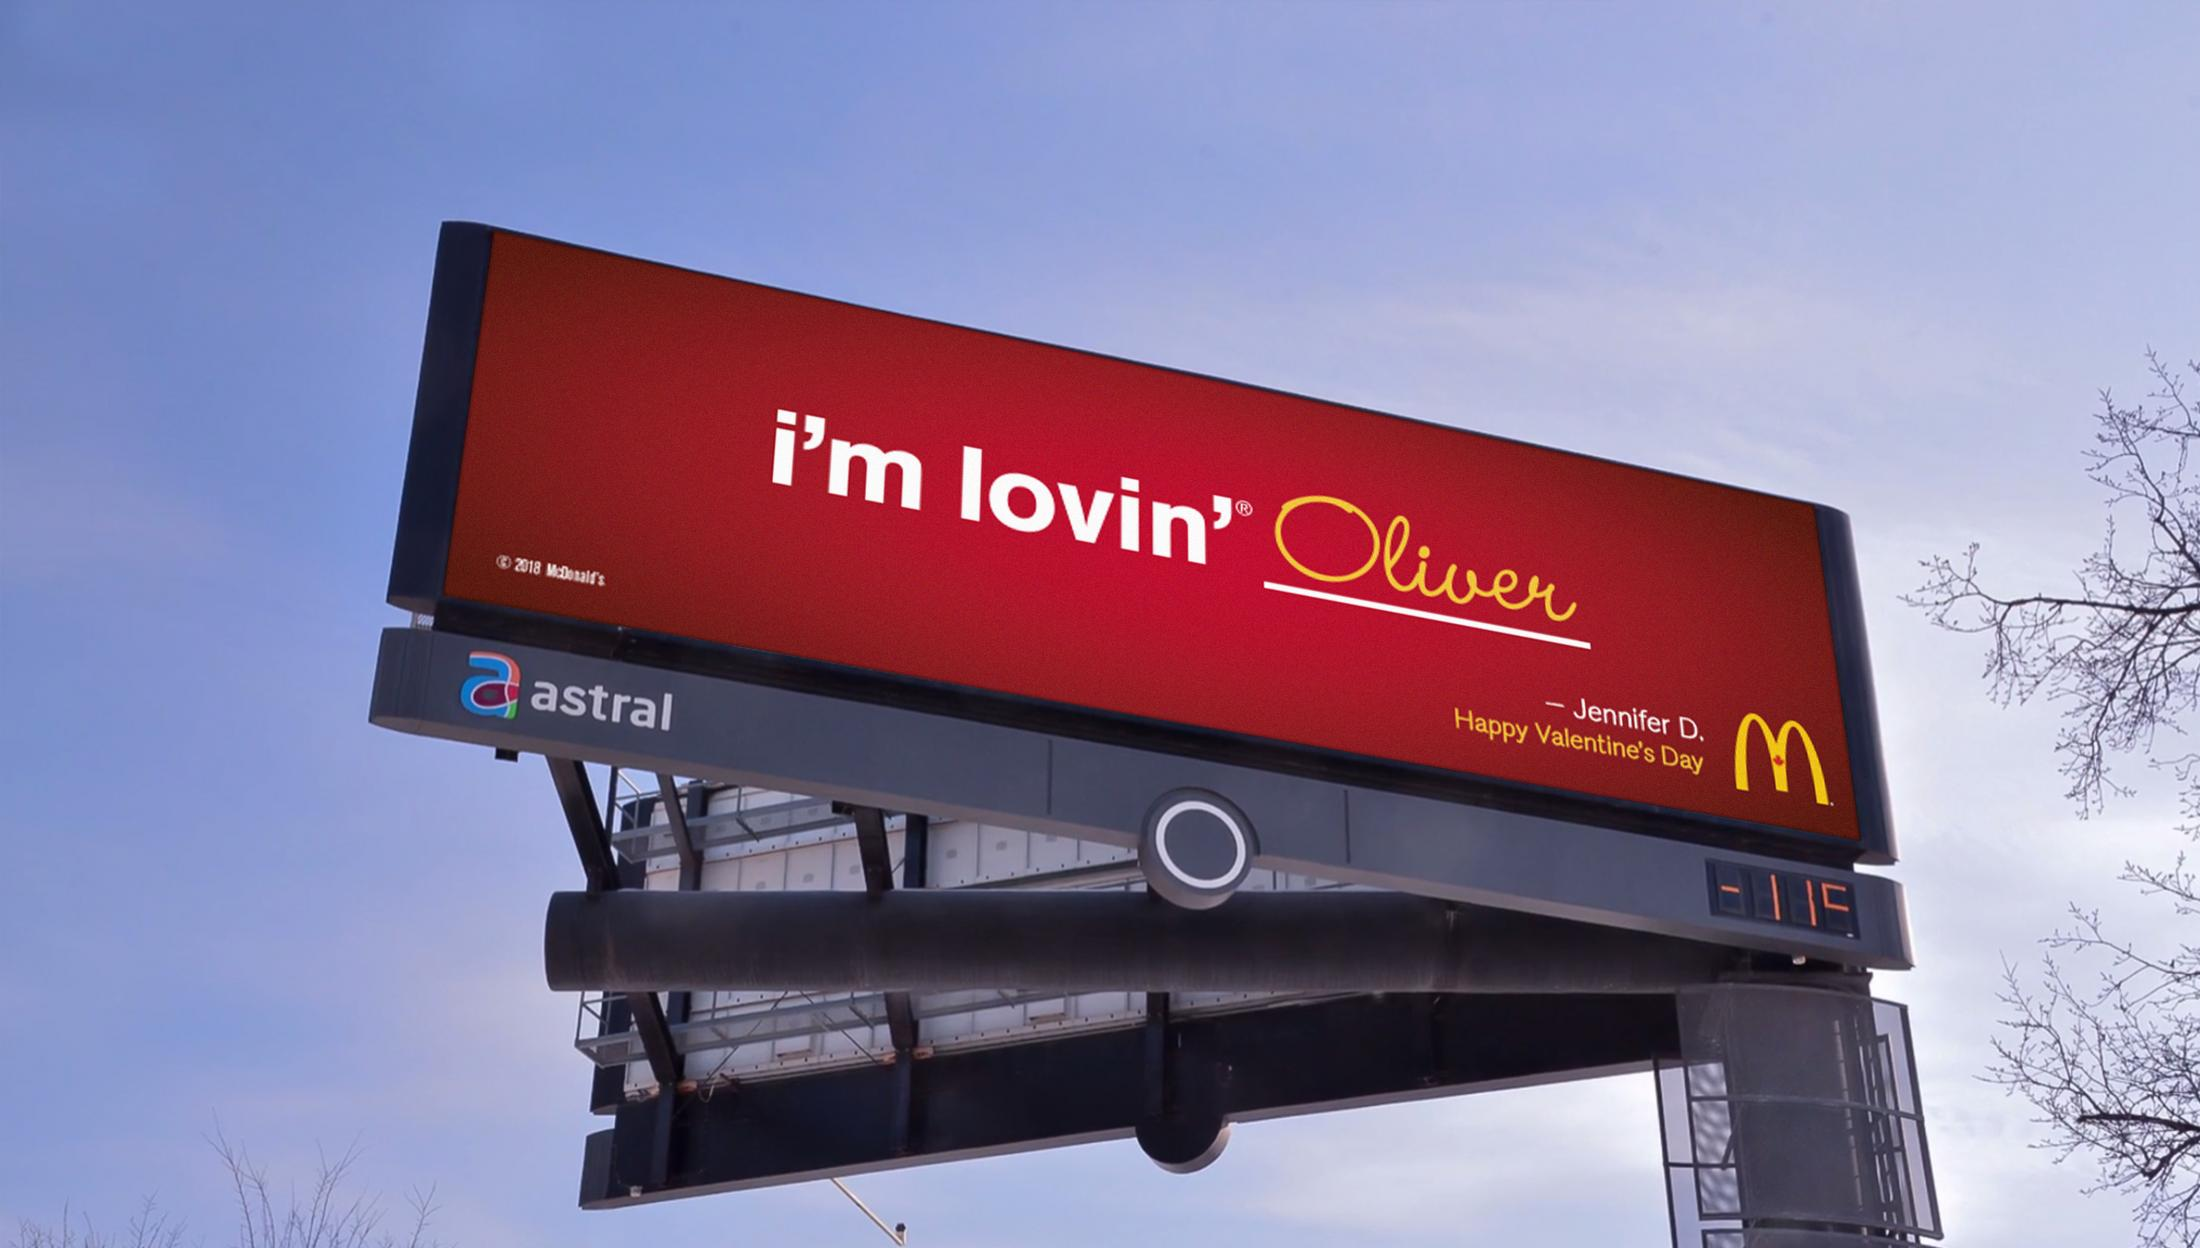 McDonald's Outdoor Ad - I'm lovin' ____